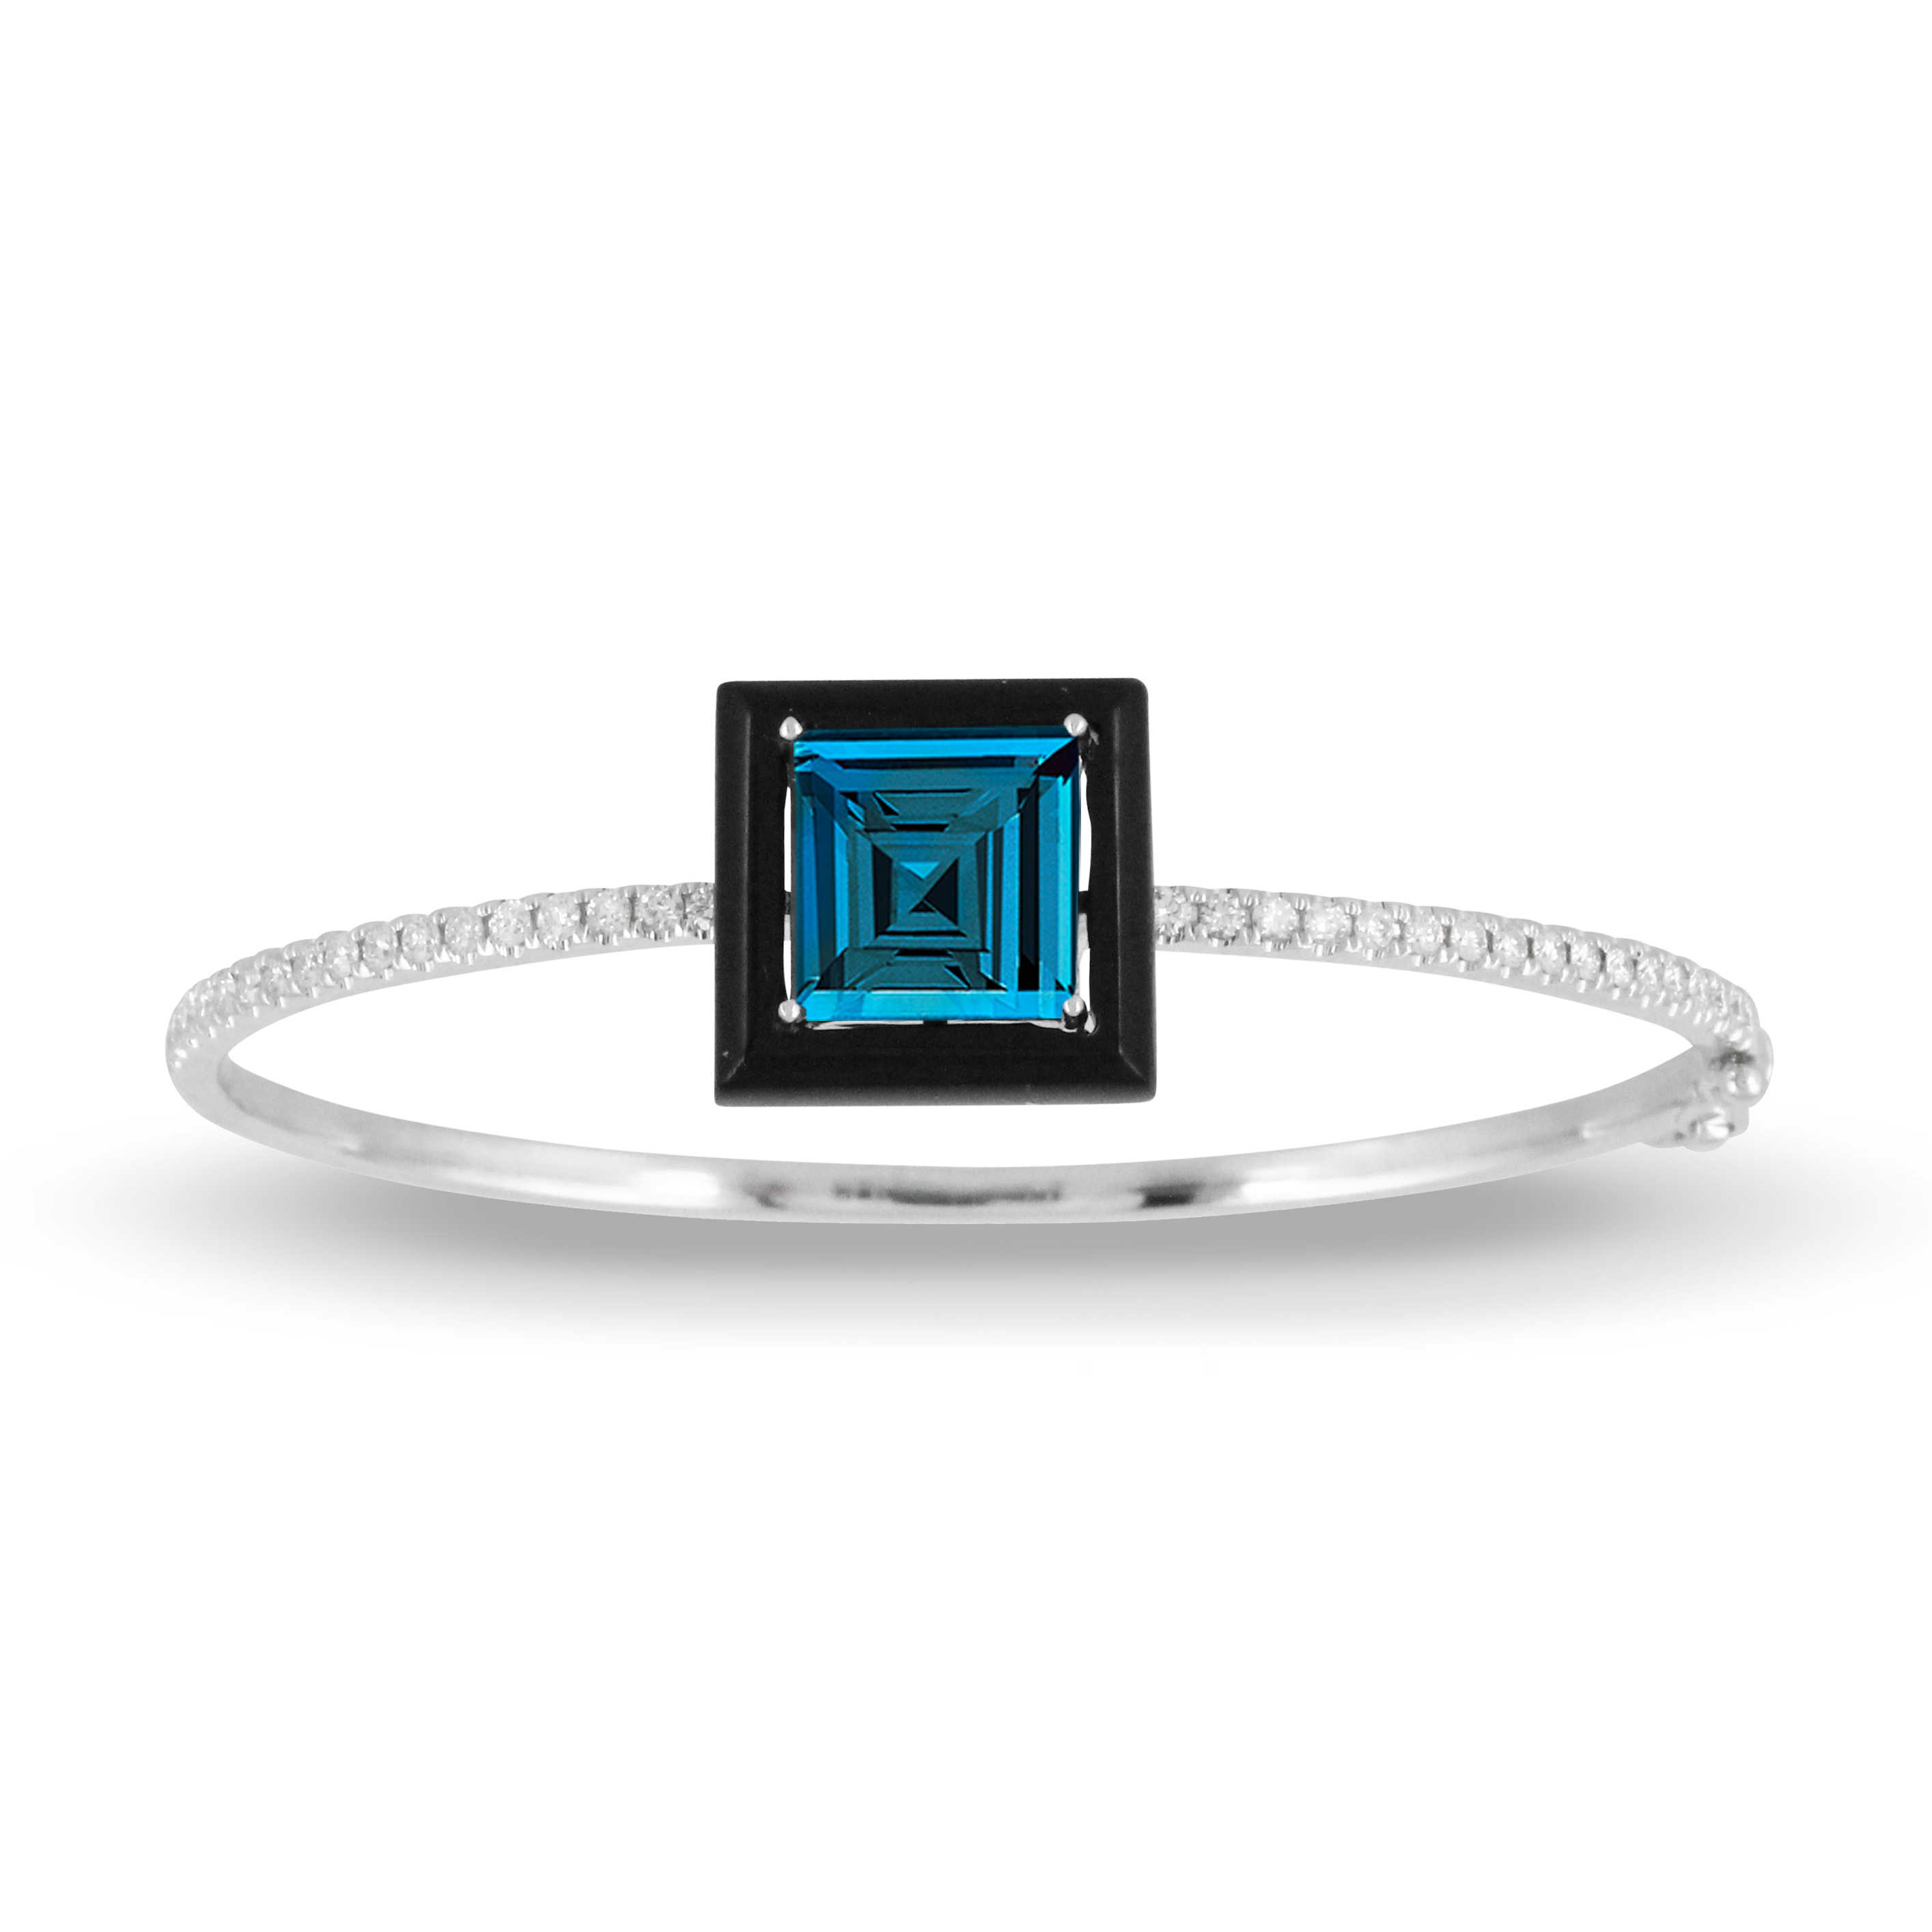 18K White Gold Onyx Bangle Bracelet - 18K White Gold Diamond Bangle With Black Onyx And London Blue Topaz Center